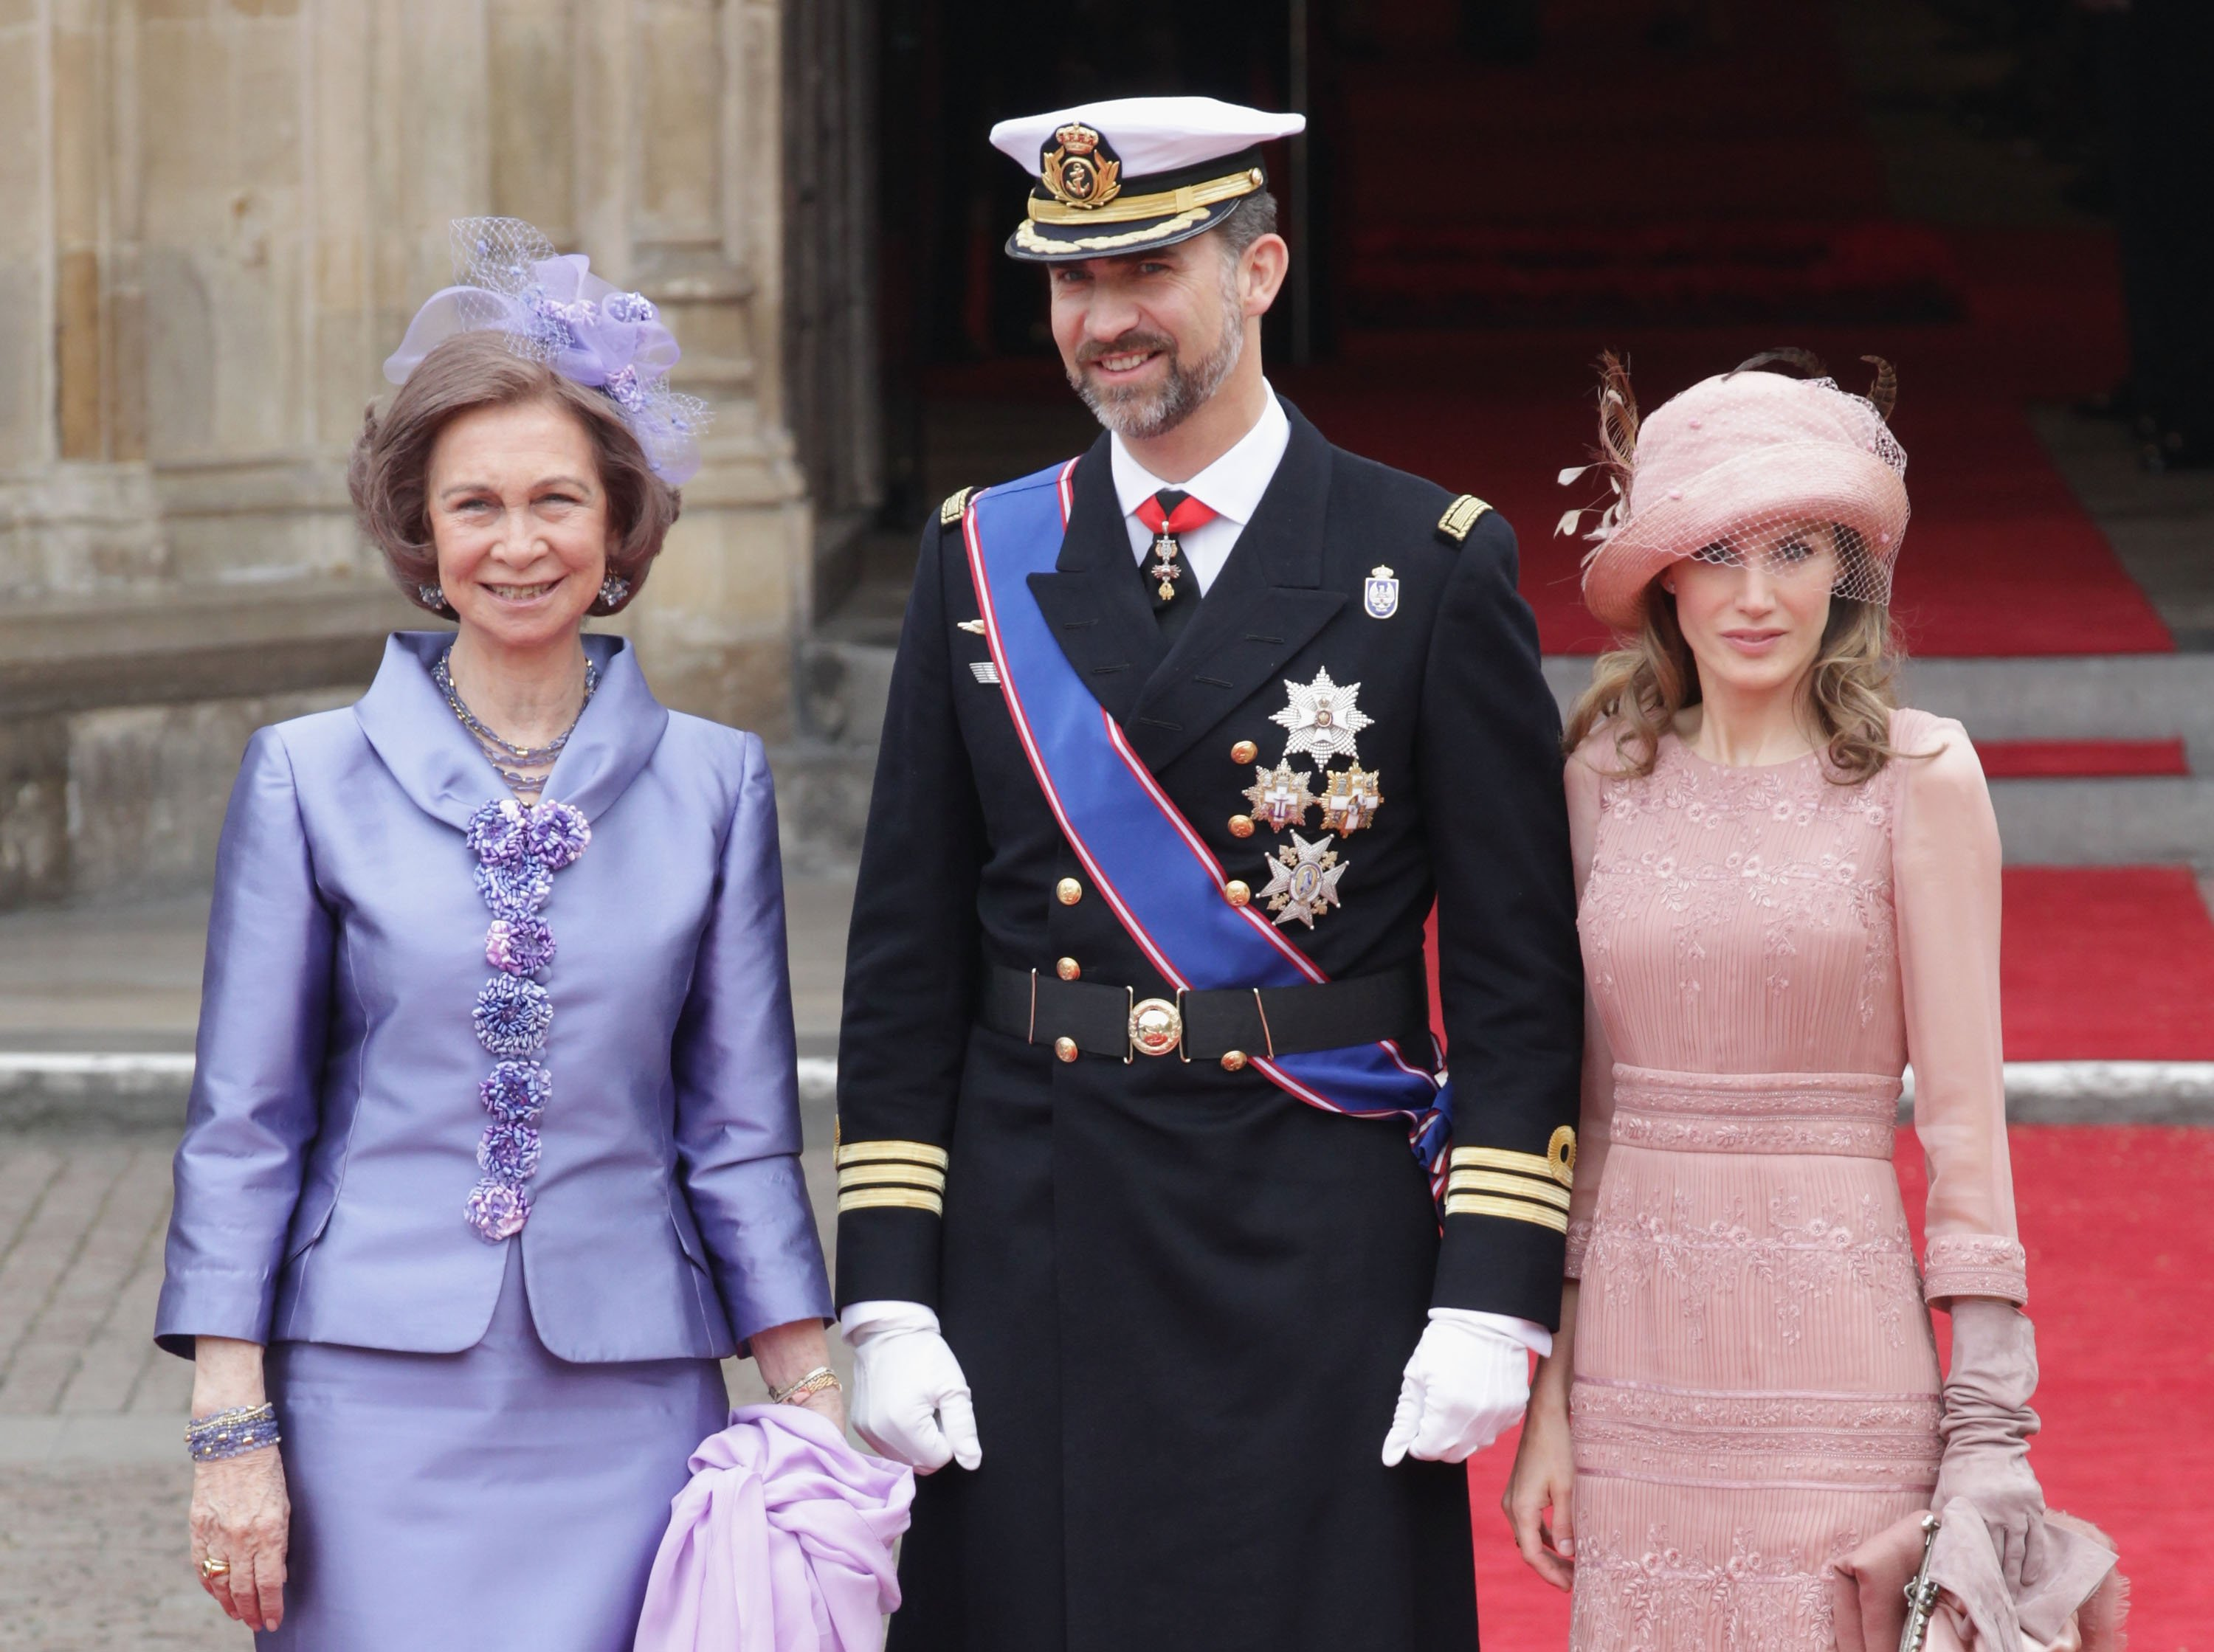 Don Felipe, doña Letizia y la reina Sofía, en la boda del príncipe William y Kate Middleton, el 29 de abril de 2011 en Londres, Inglaterra. | Foto: Getty Images